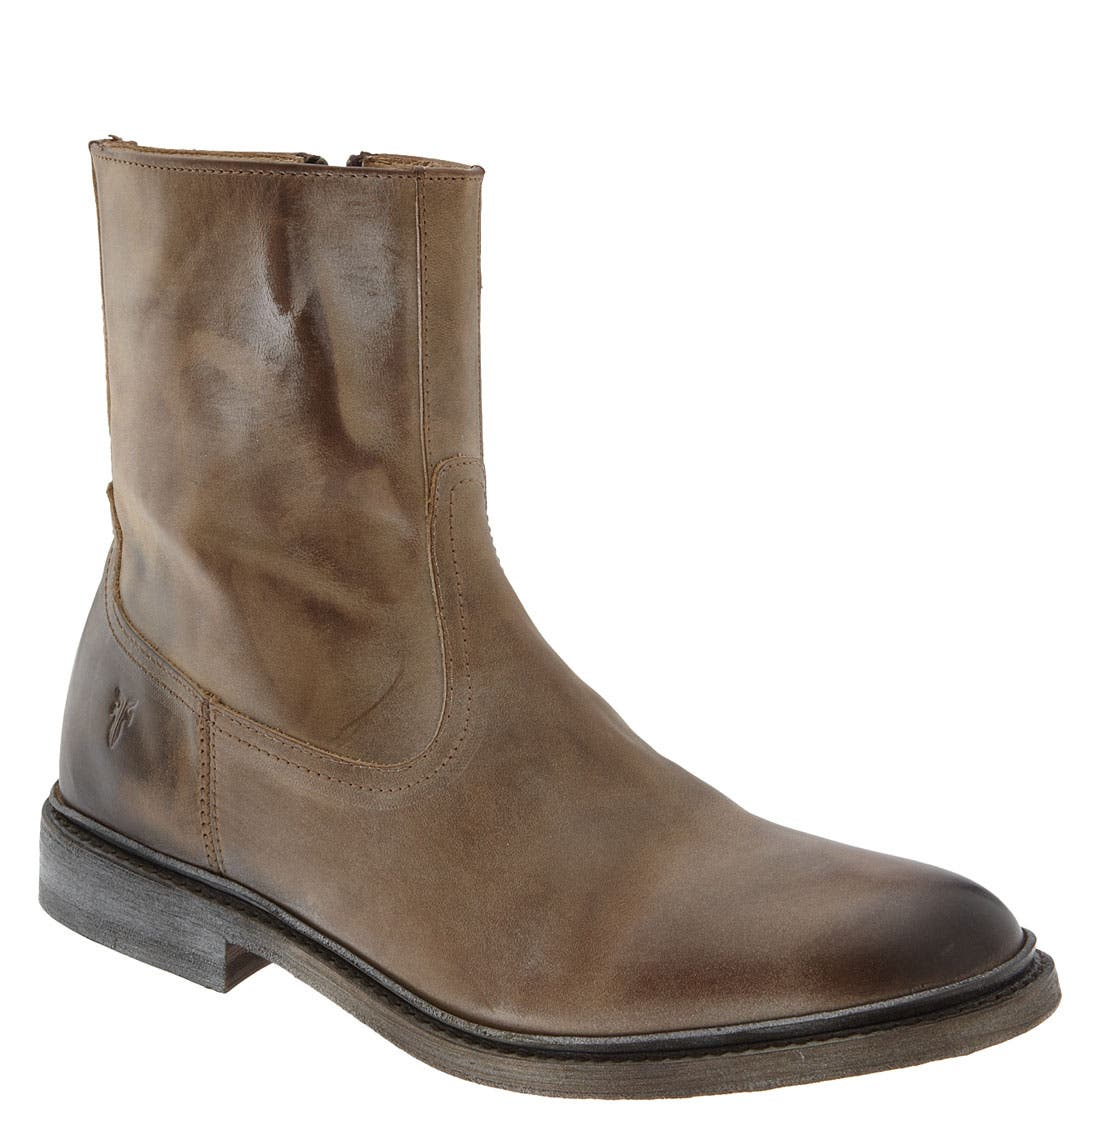 Alternate Image 1 Selected - Frye 'James' Ankle Boot